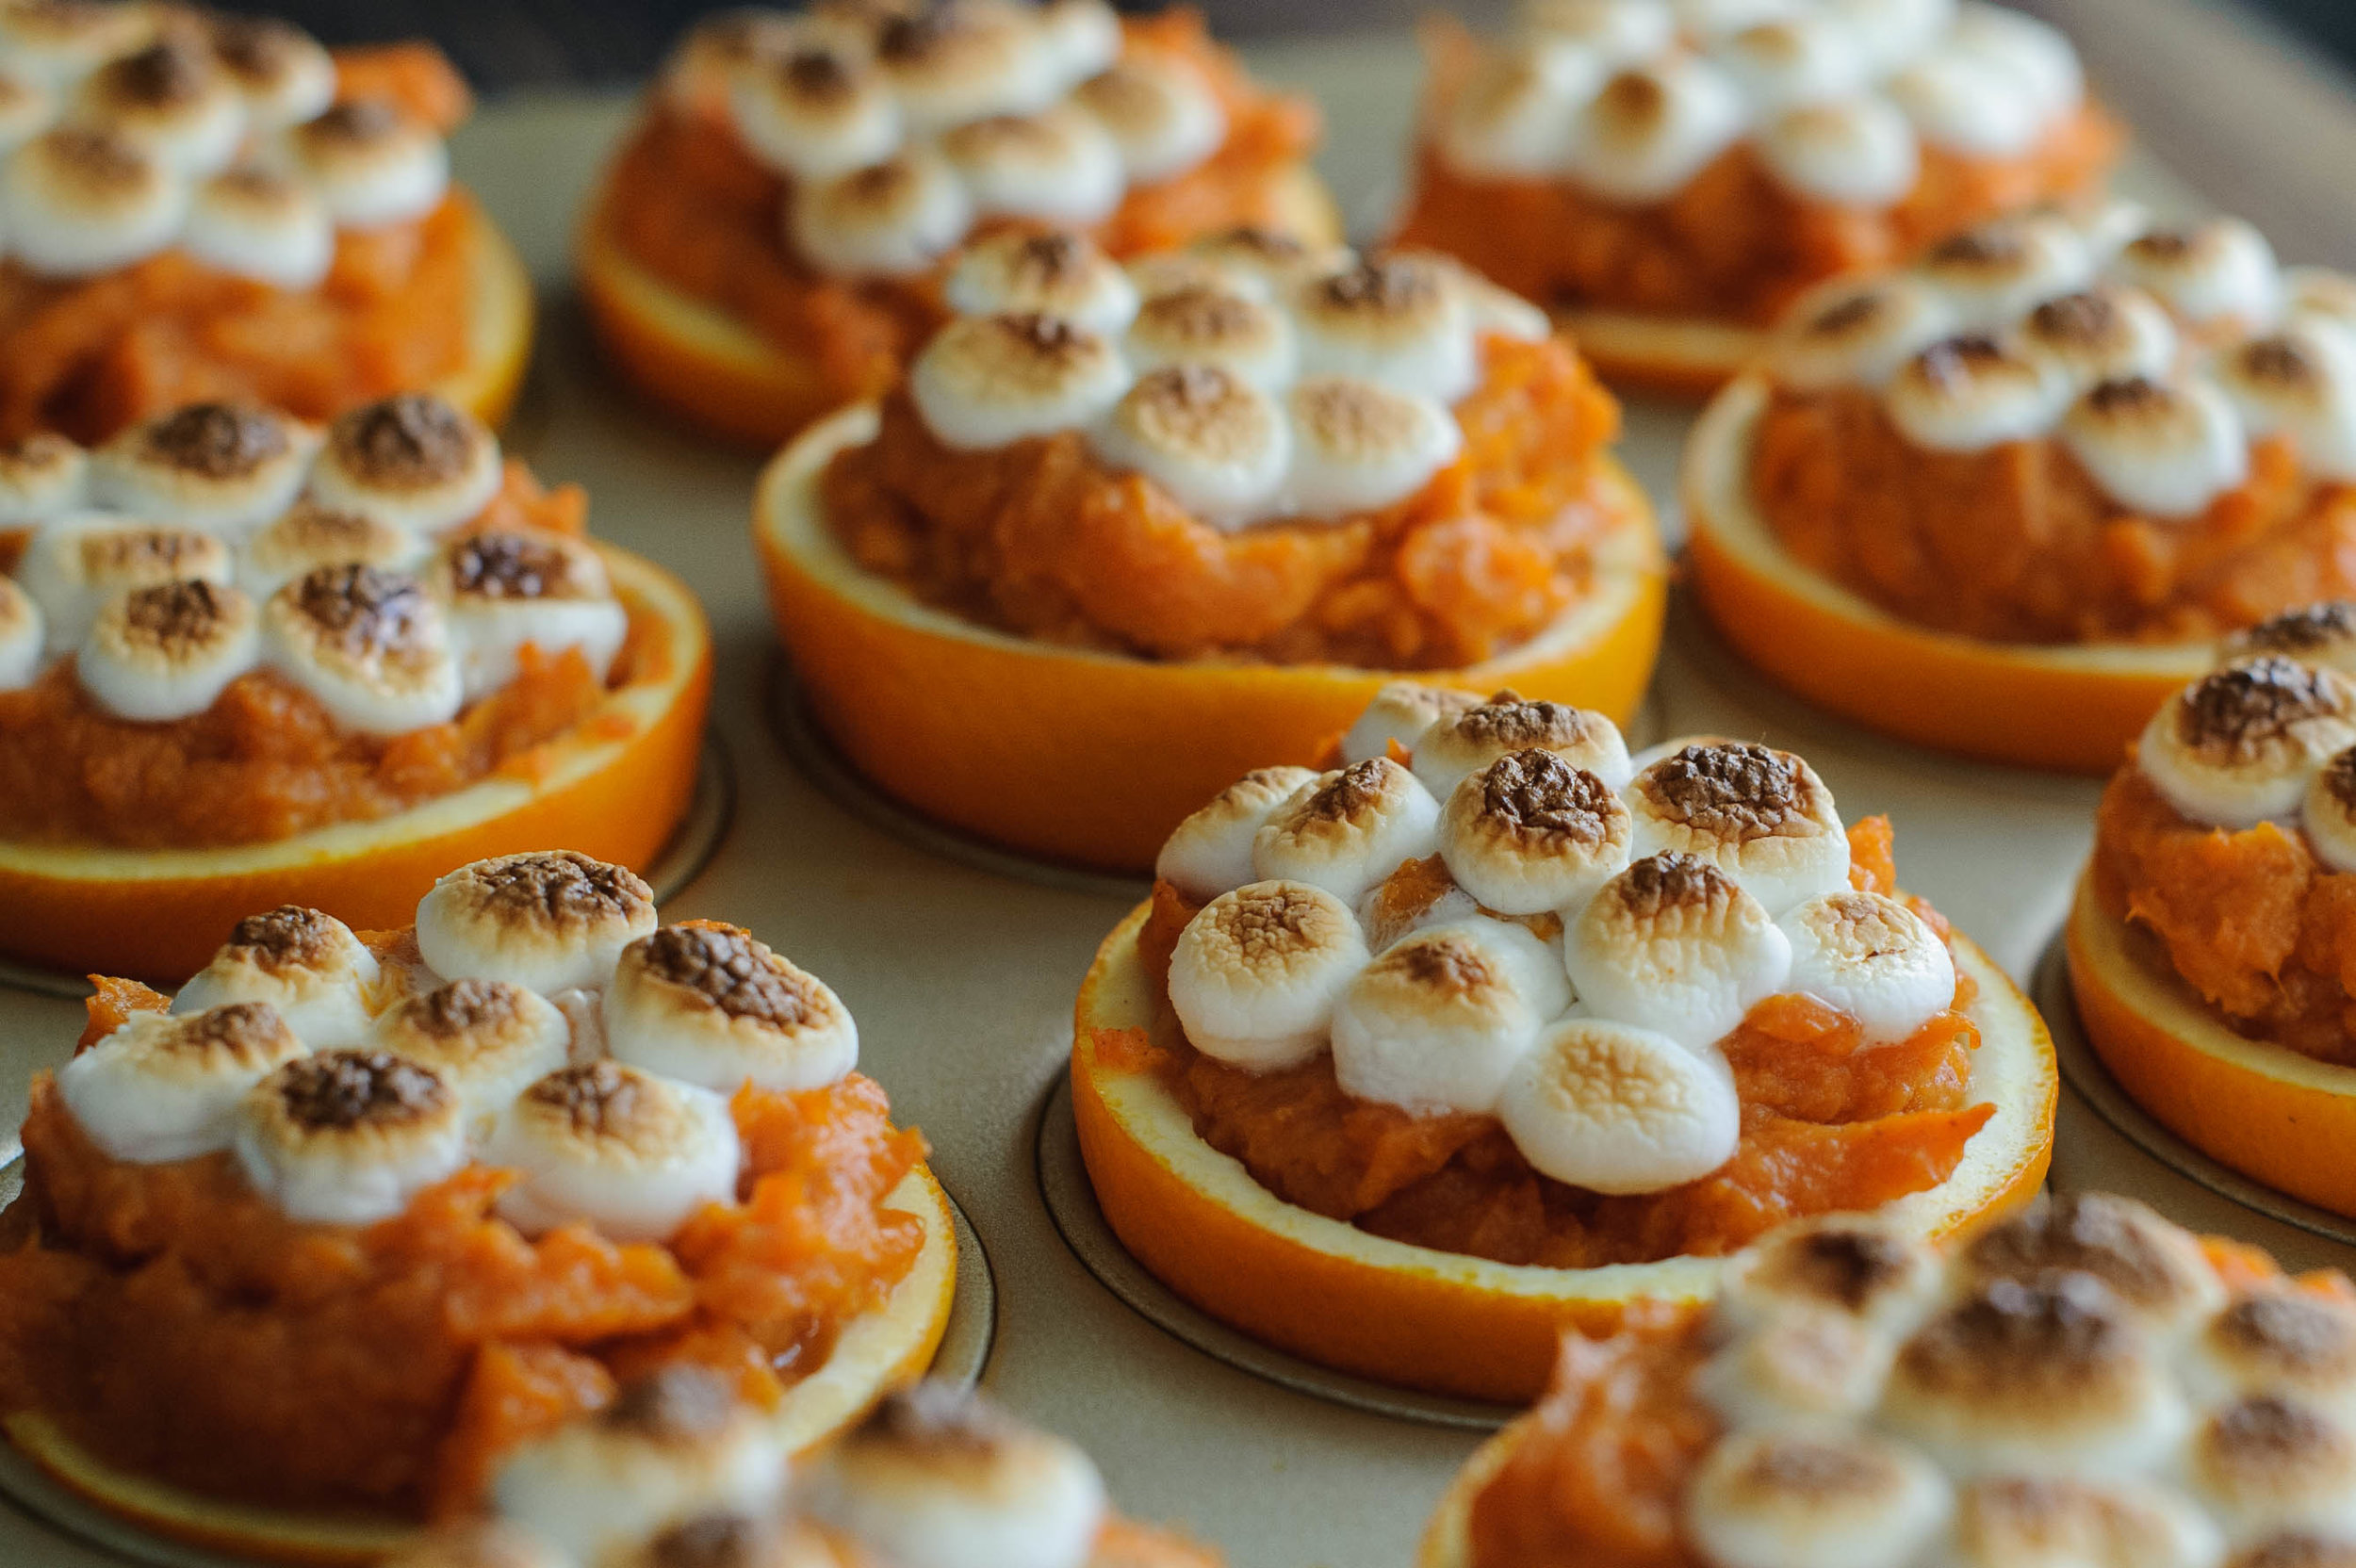 Candied Yams in Orange Cups